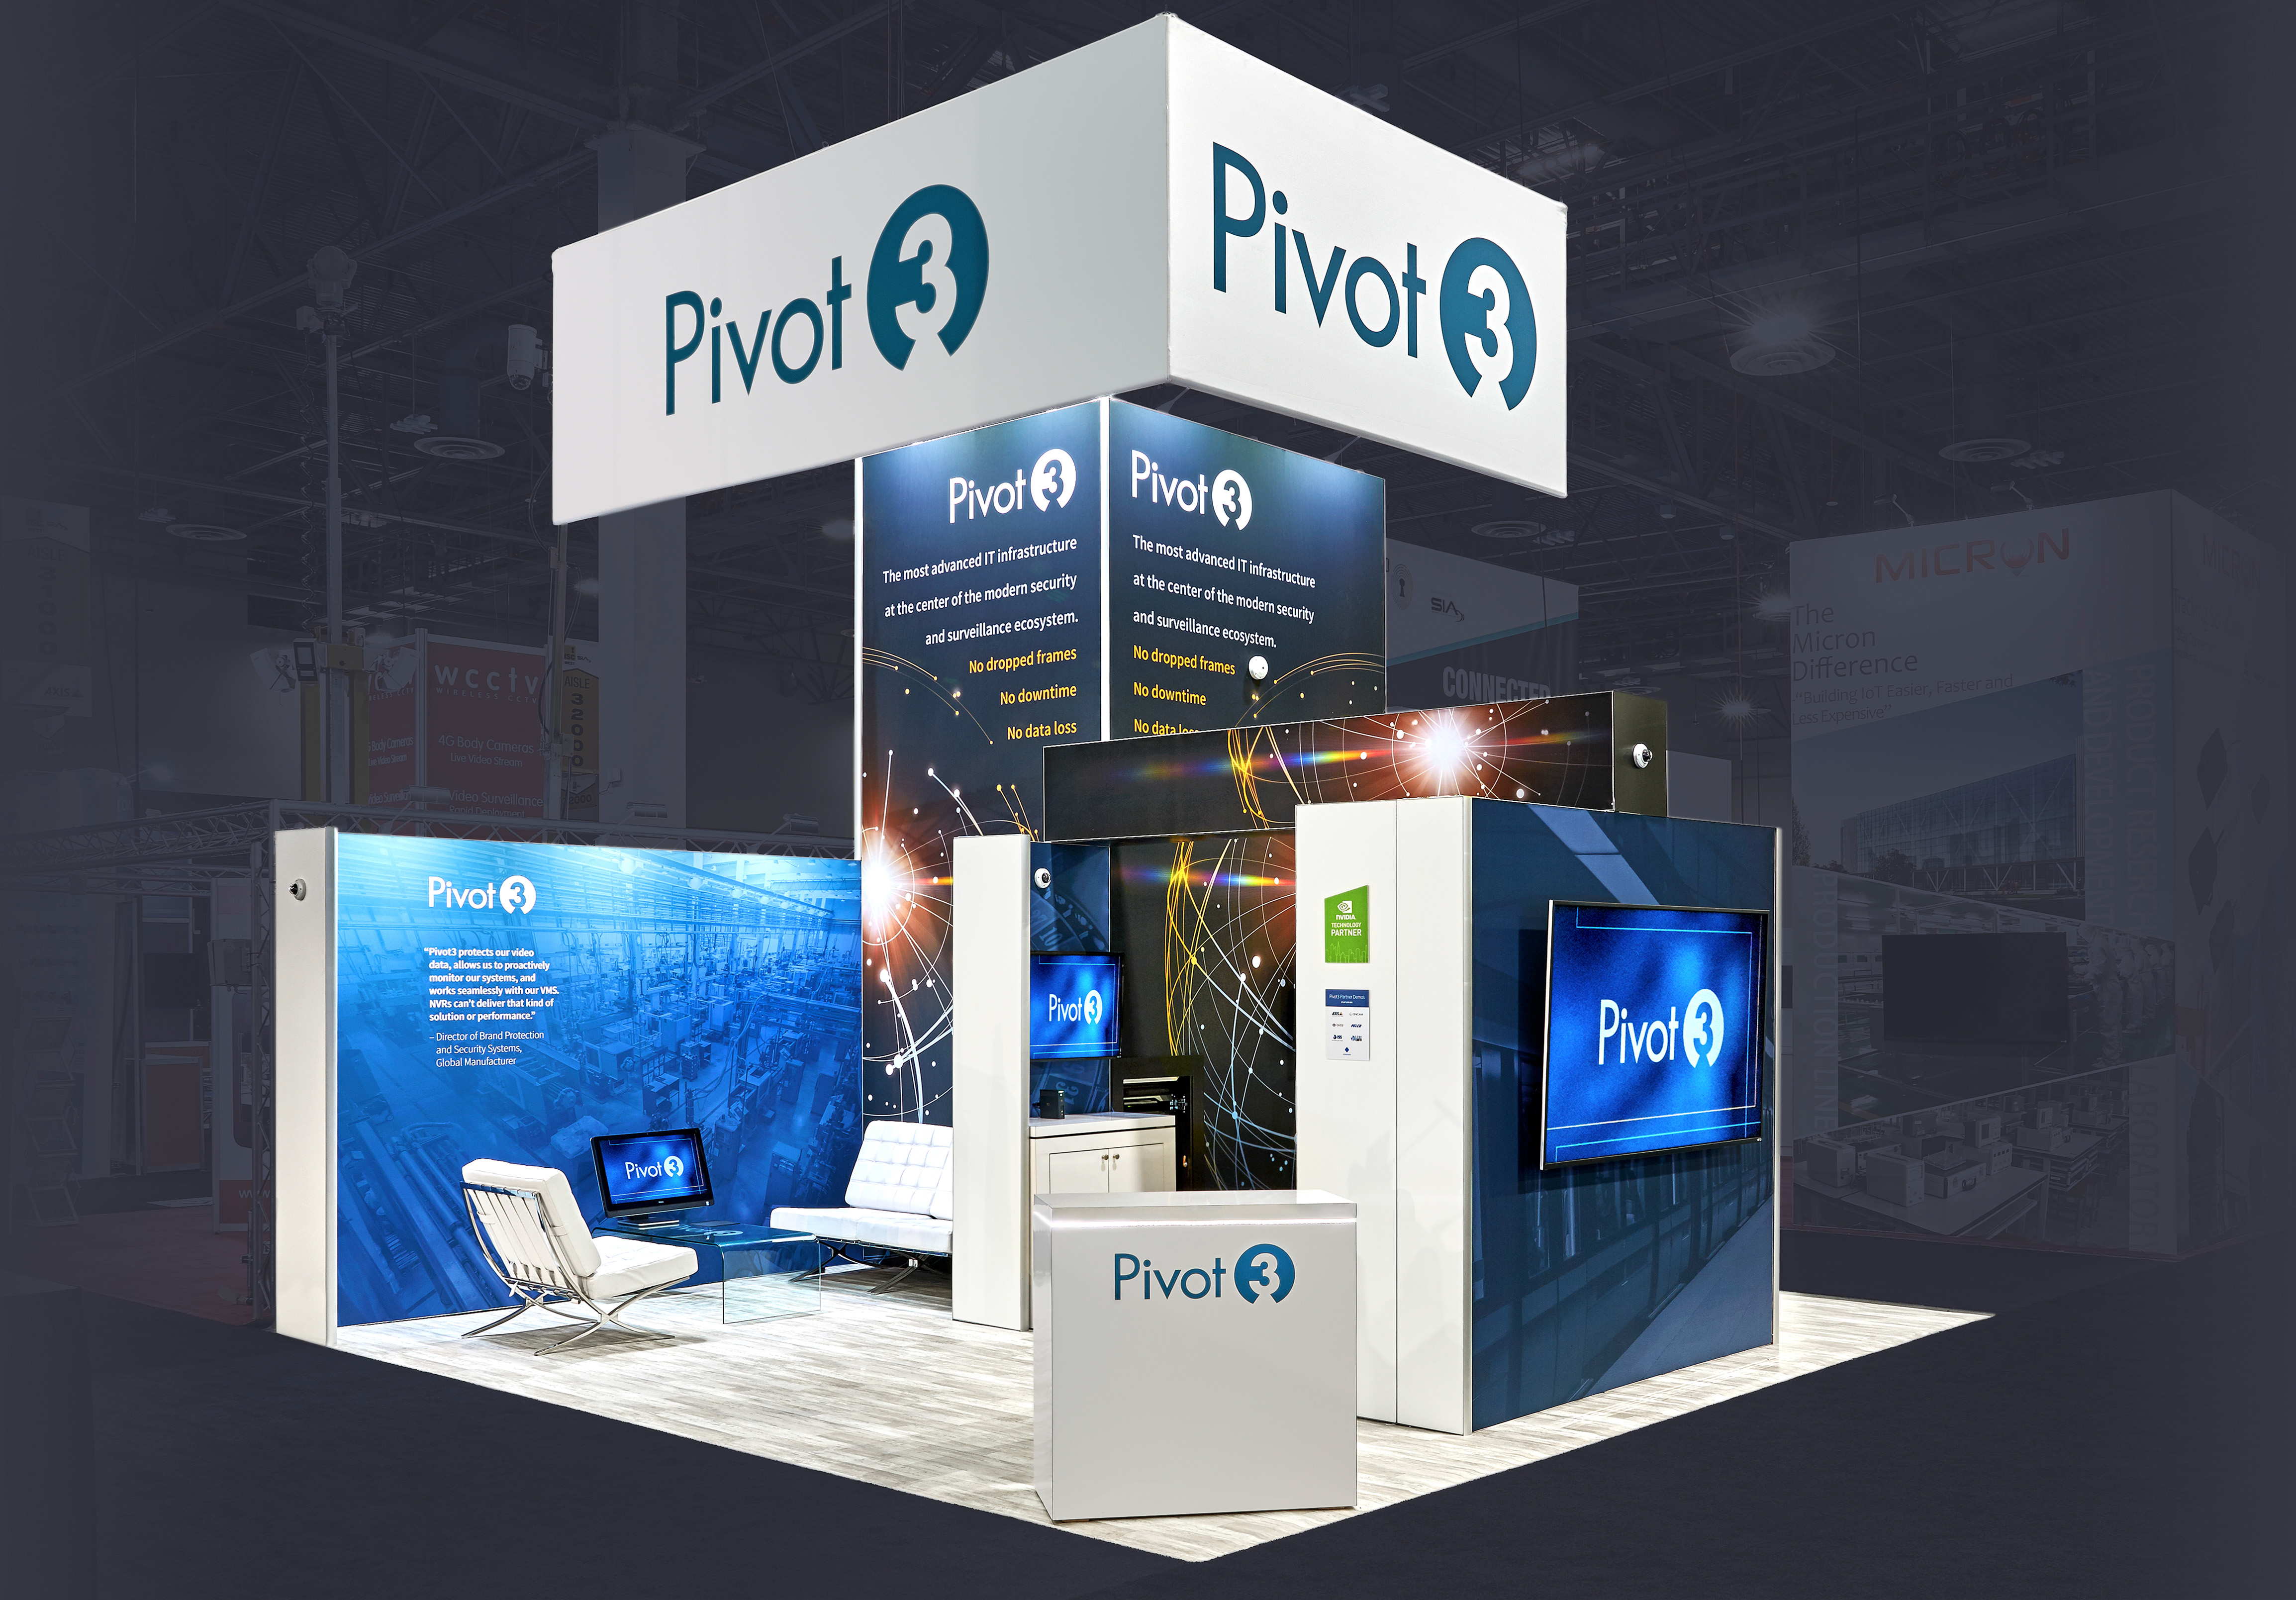 ISC West trade show booth